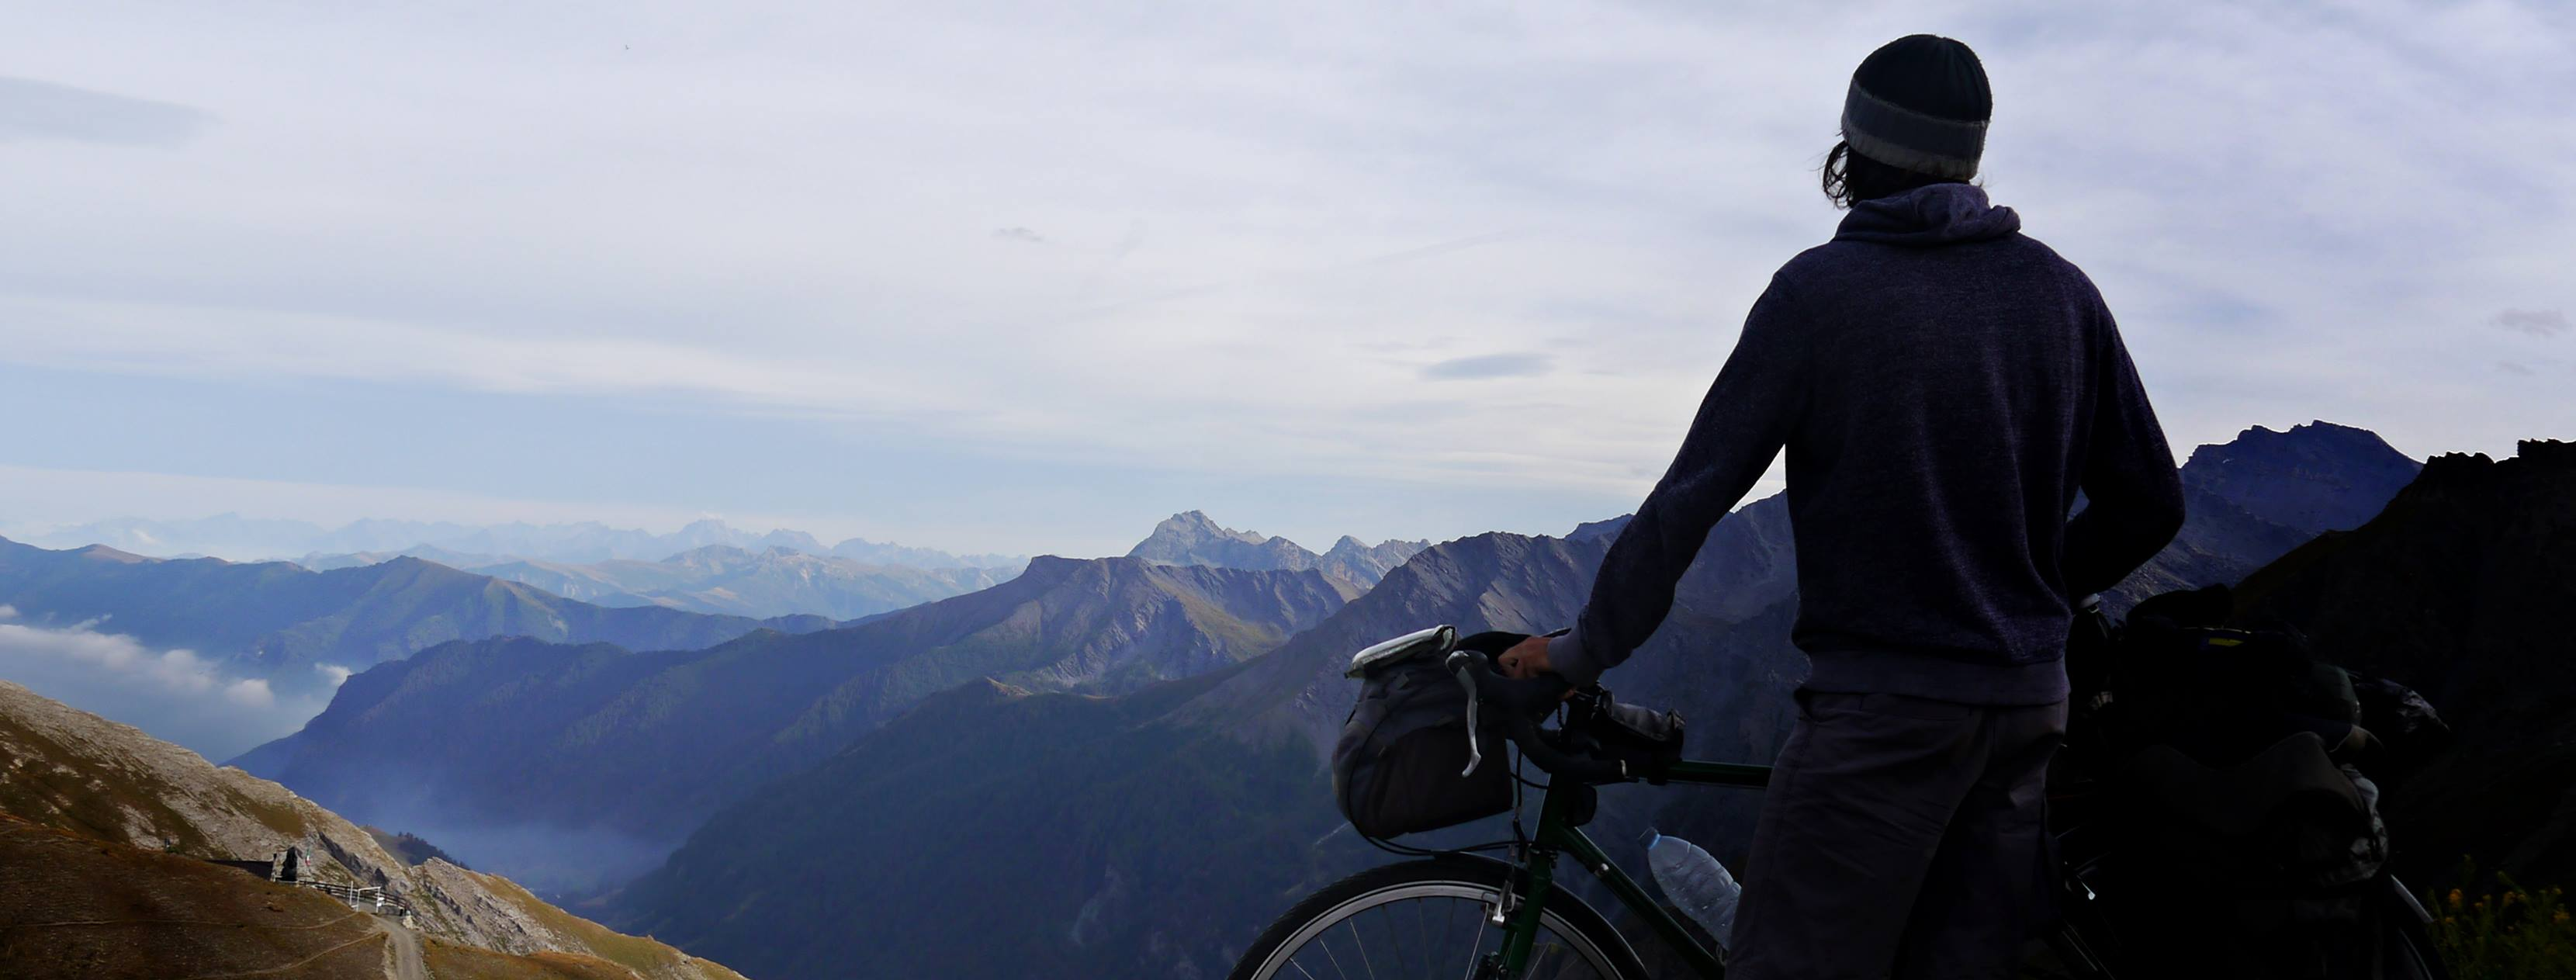 me and my bicycle climbing col agnel